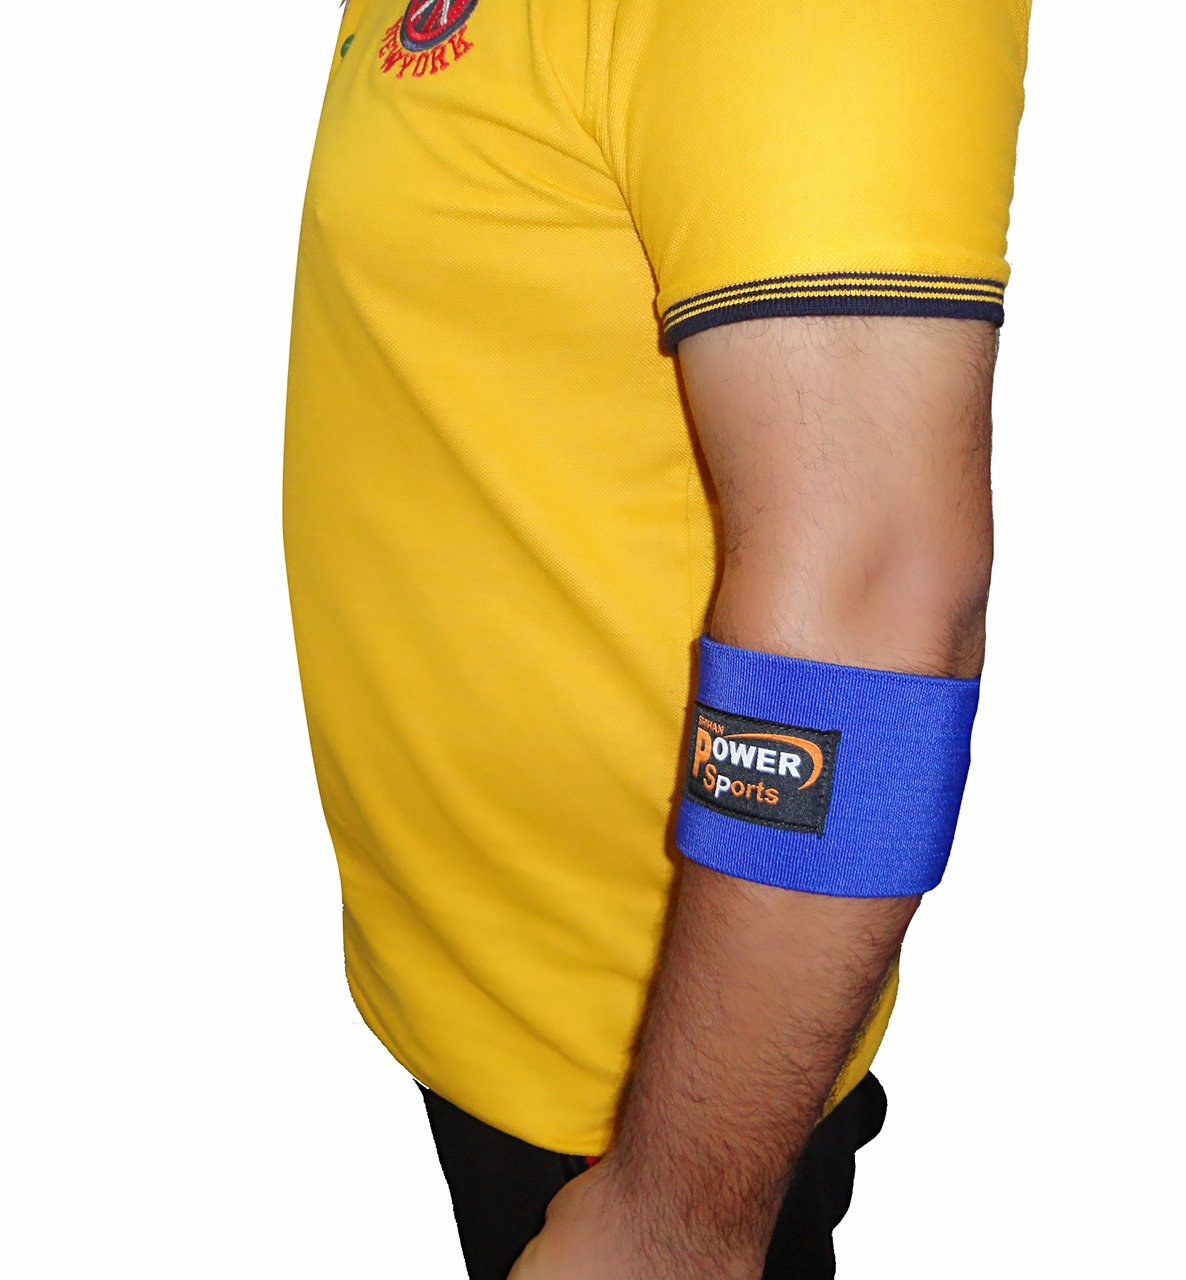 Shihan Power-Sports Elbow Slings are heavy-duty sleeves that provide an undeniable level of maximum joint compression to promote superior support and increase strength of your elbows. Experience s by Shihan Power-Sports